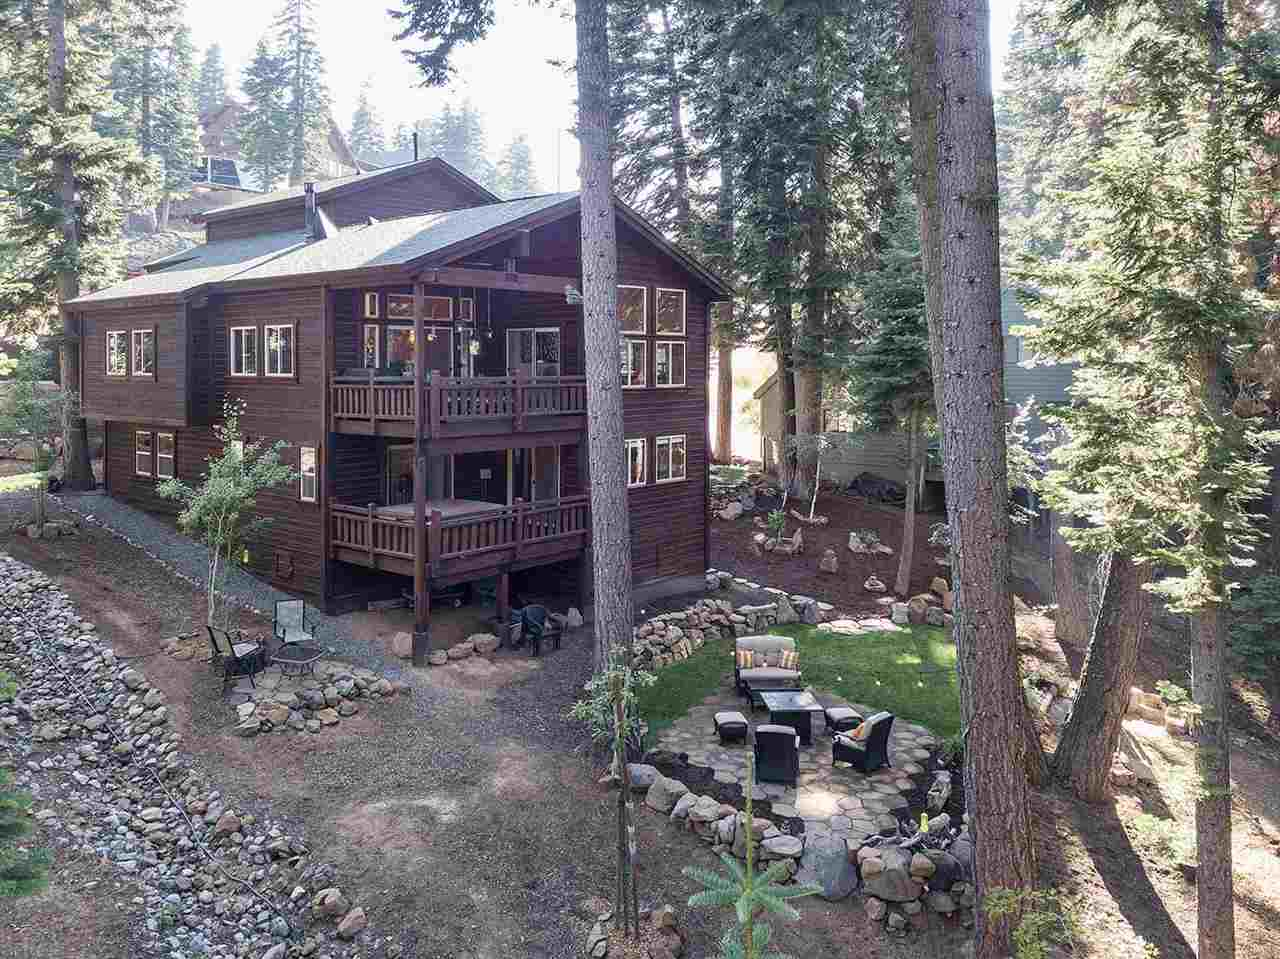 Single Family Home for Active at 13770 Pathway Avenue 13770 Pathway Avenue Truckee, California 96161 United States